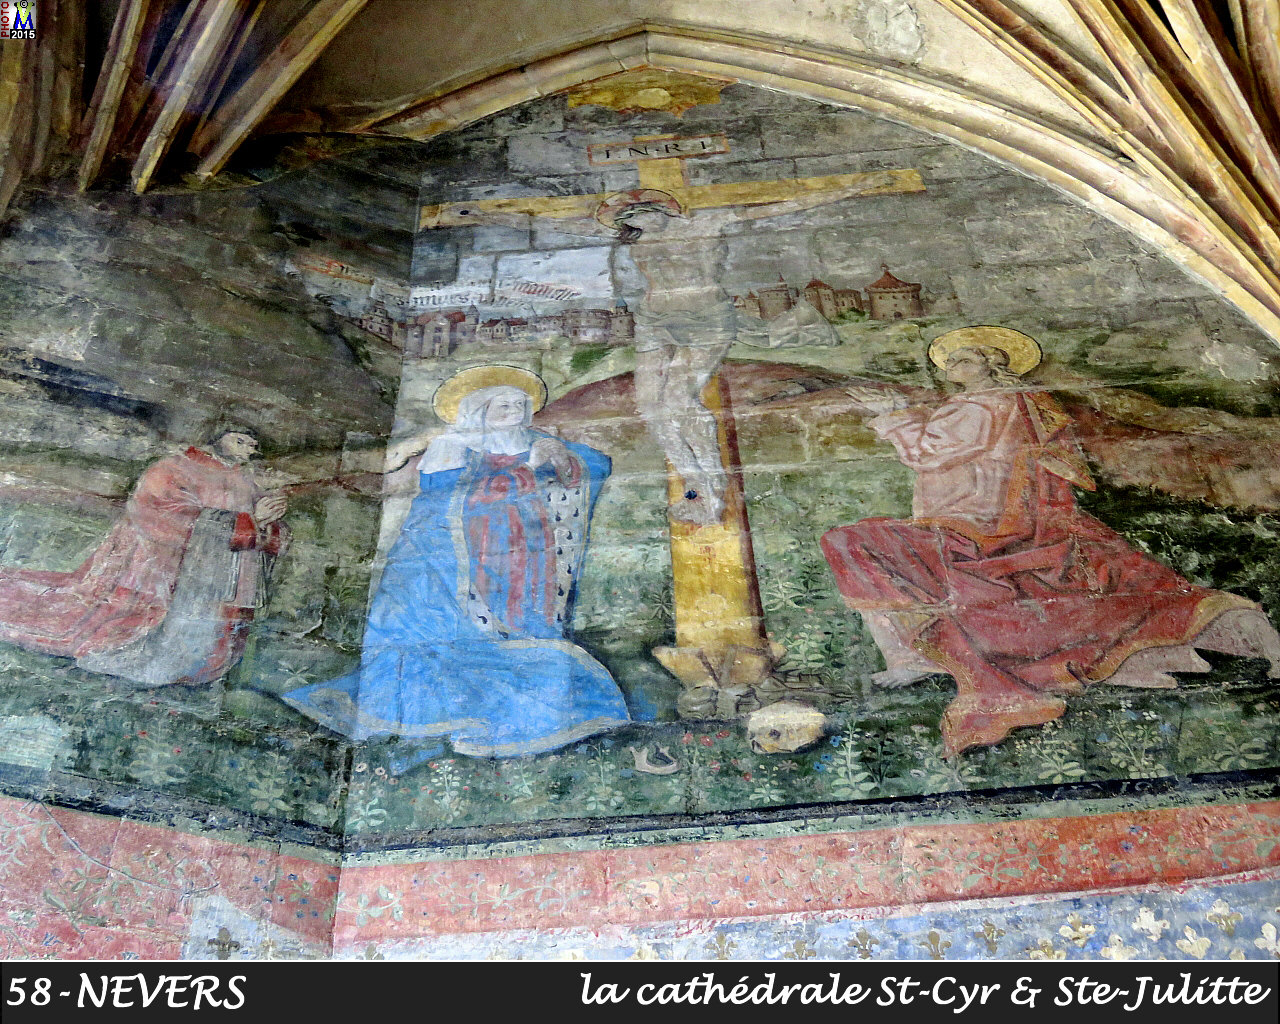 58NEVERS-cathedrale_234.jpg